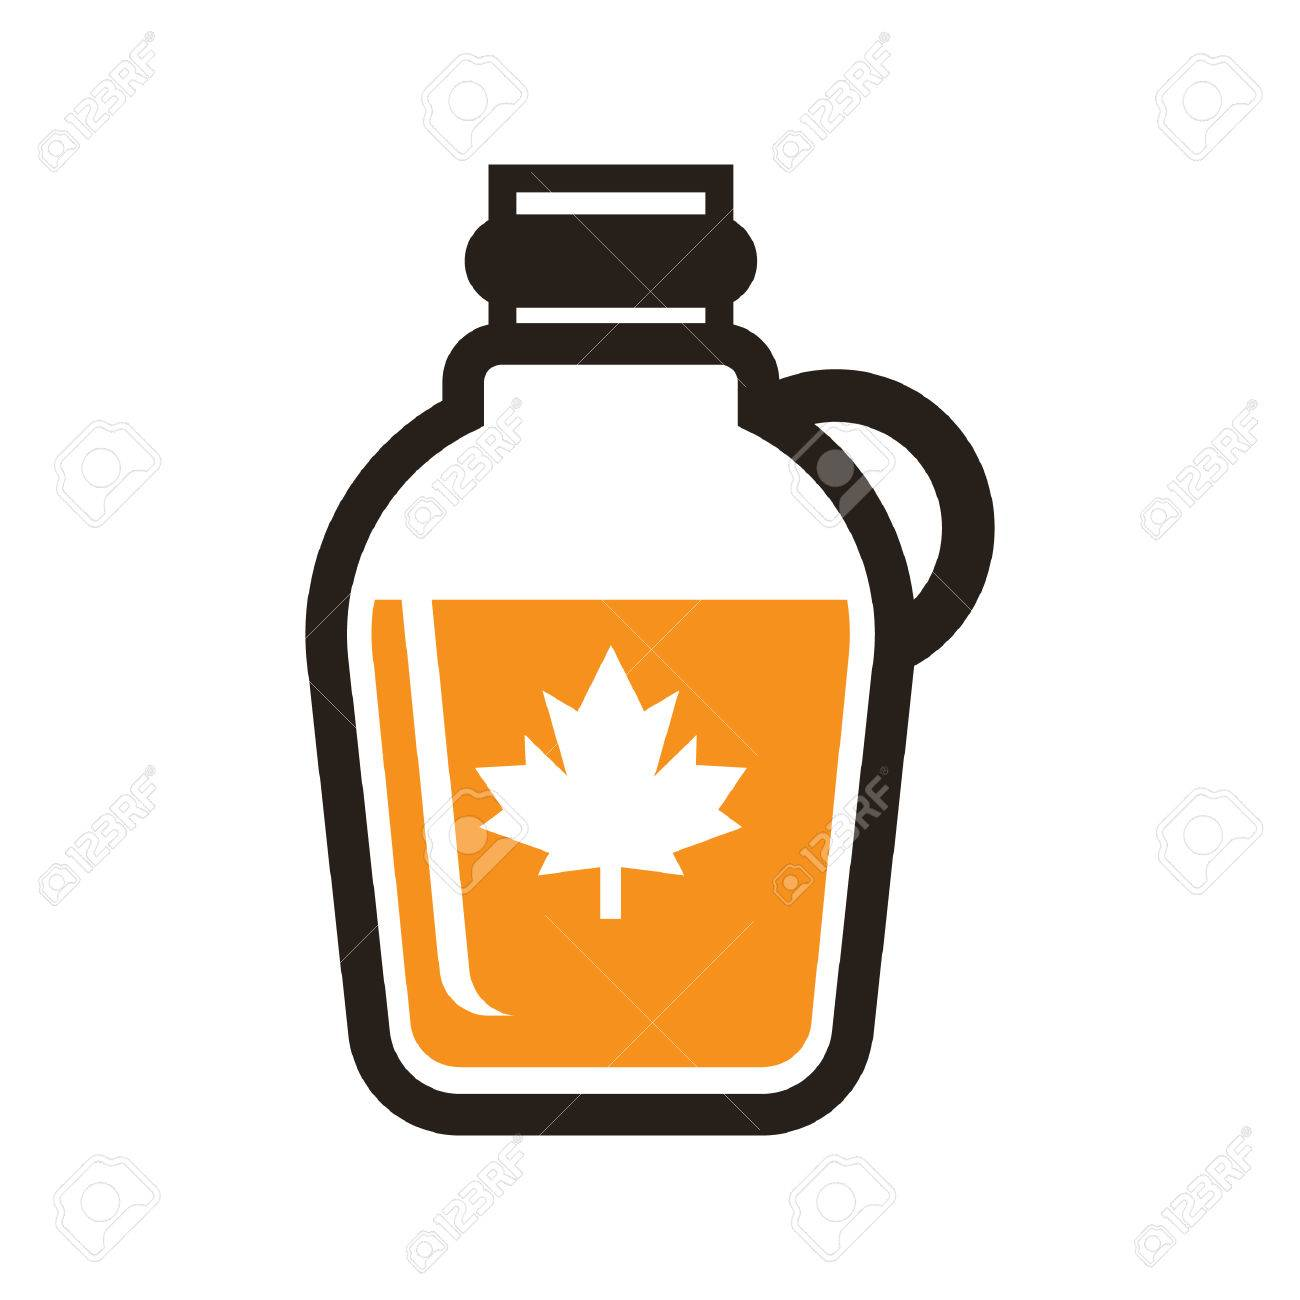 a maple syrup illustration royalty free cliparts vectors and rh 123rf com Syrup Bottle Drawings cough syrup bottle clipart